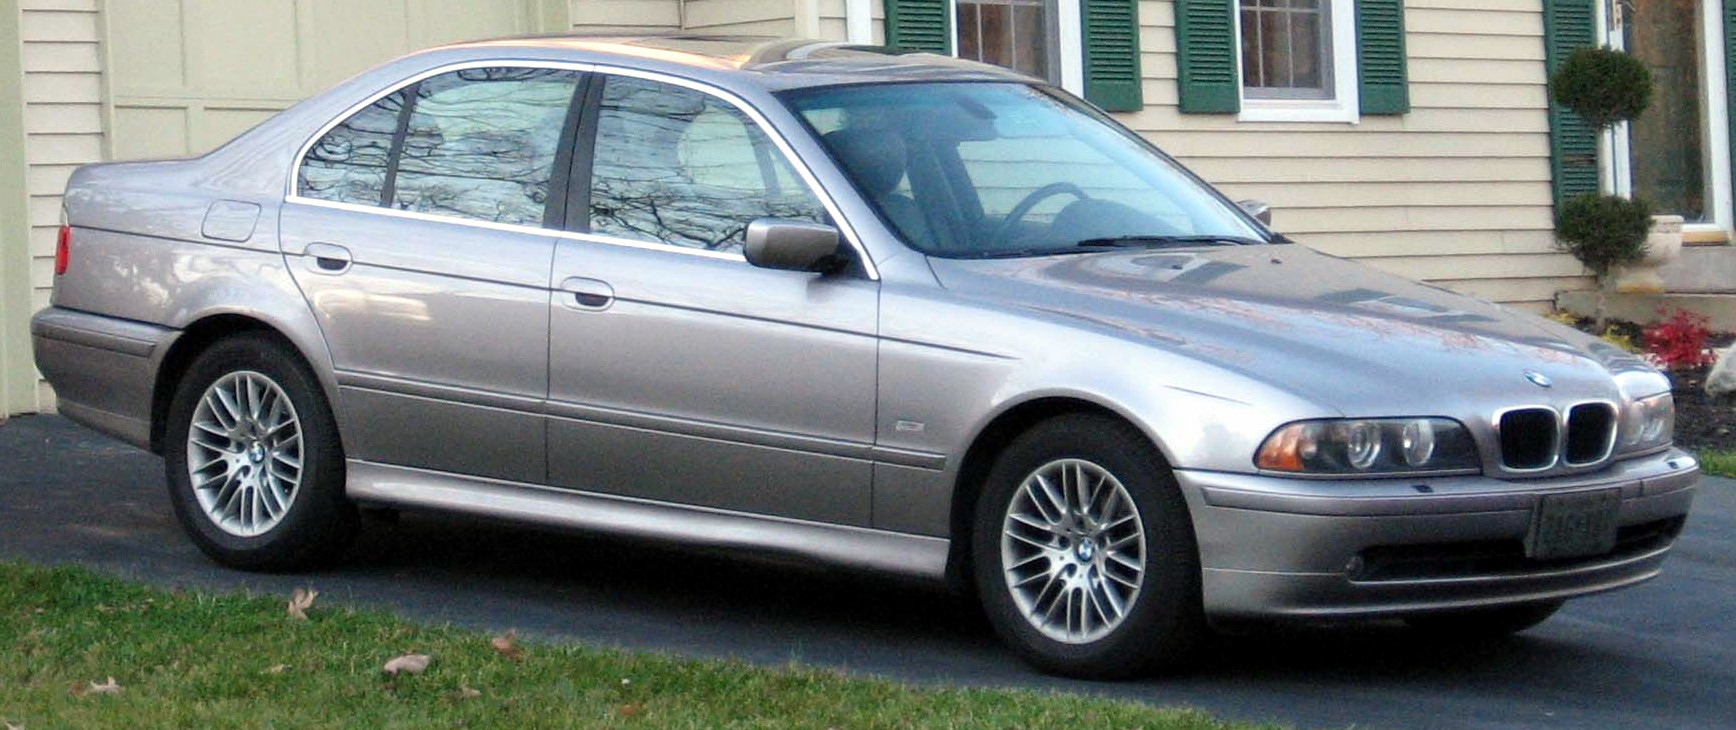 Cars that have and haven't aged well.